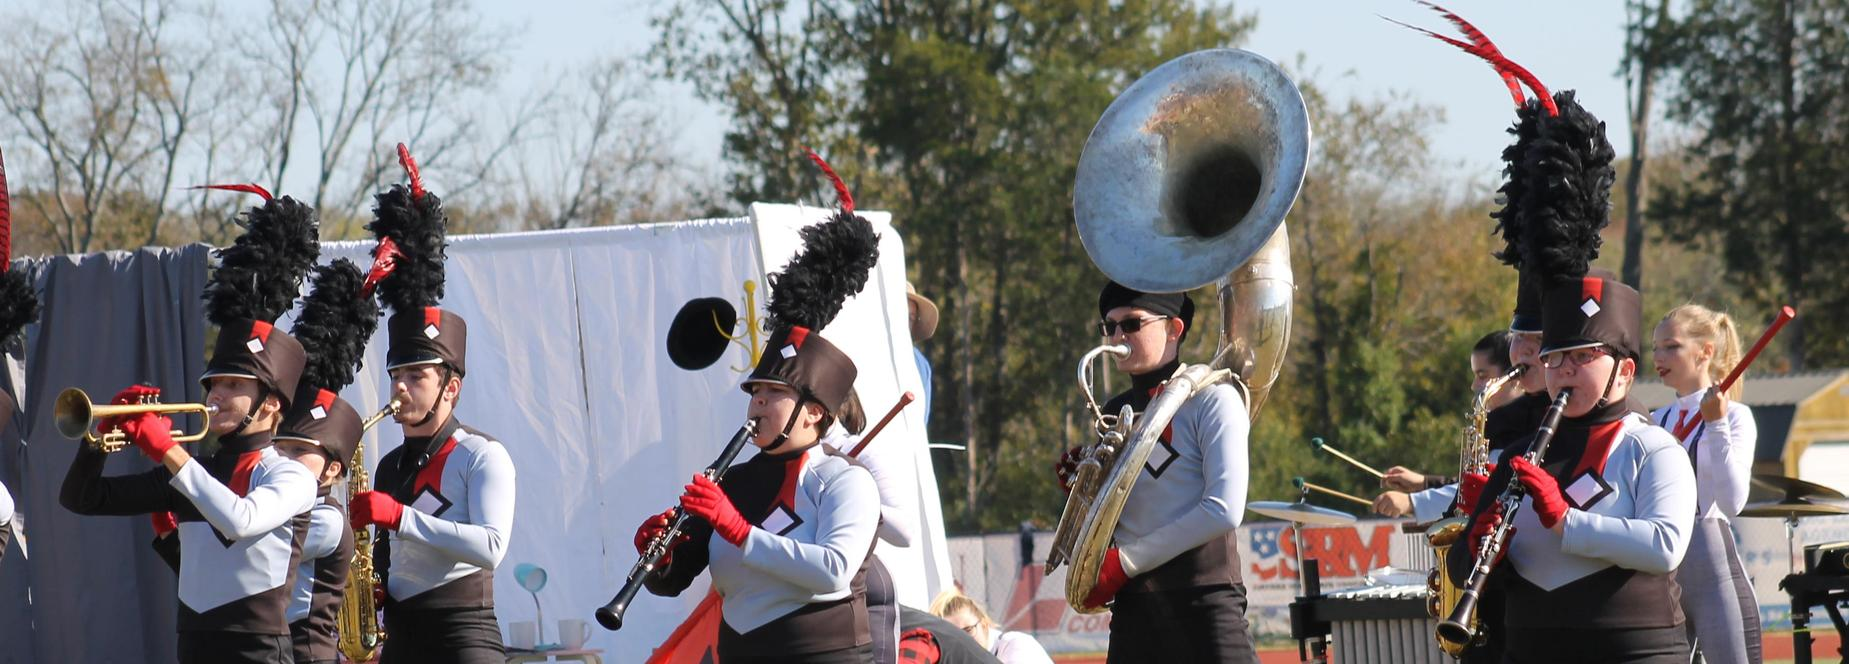 The Cheatham County Central High School band performs at the Division II State Band Championship.